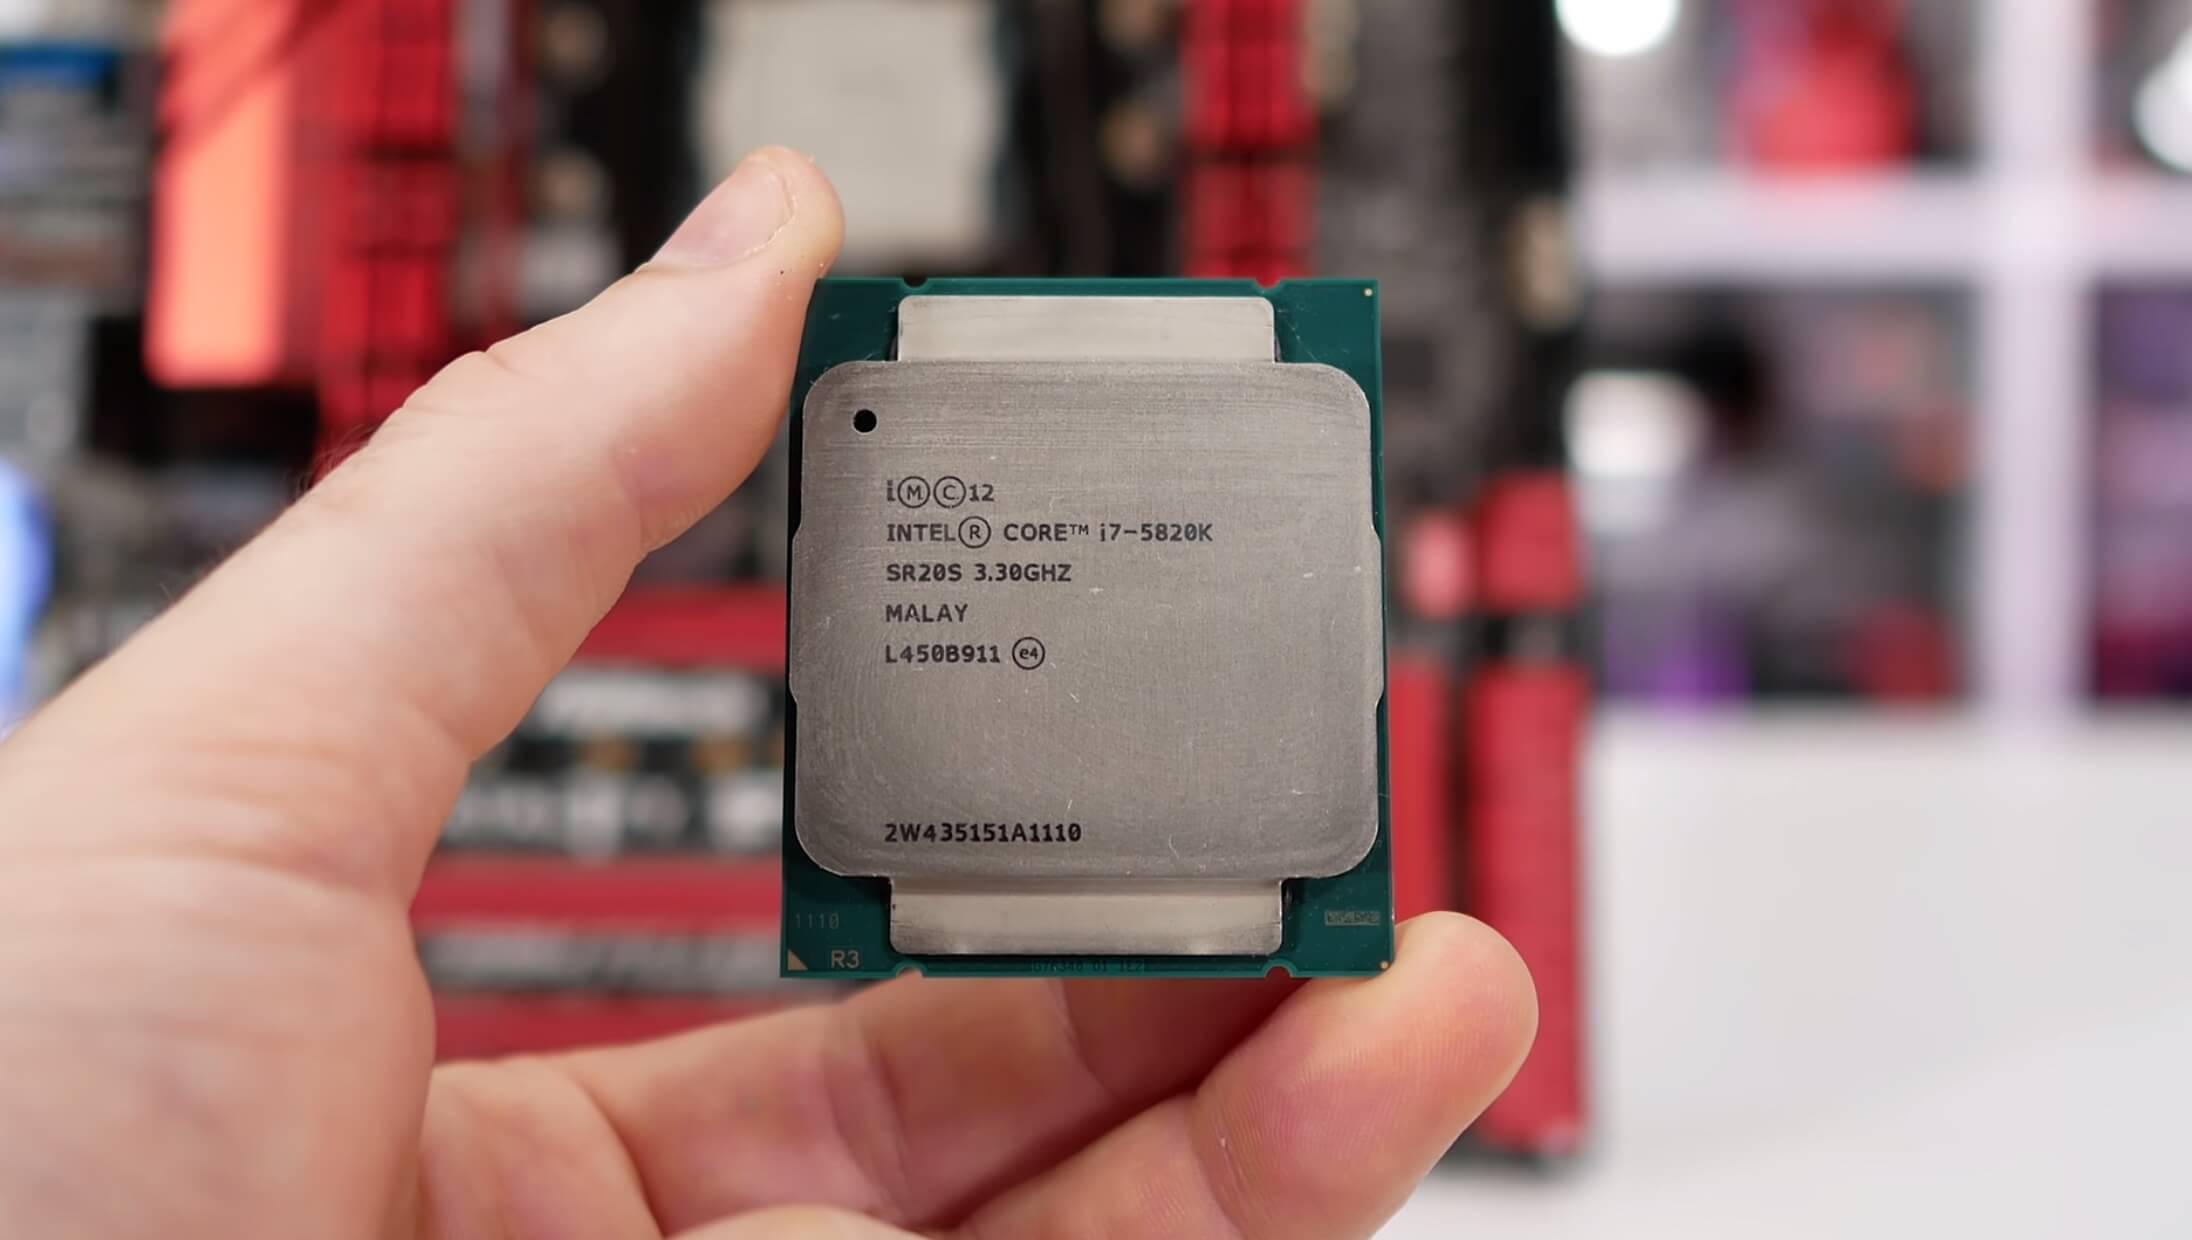 6-core/12-thread Core i7 for $200, i7-5820K Revisited > Need